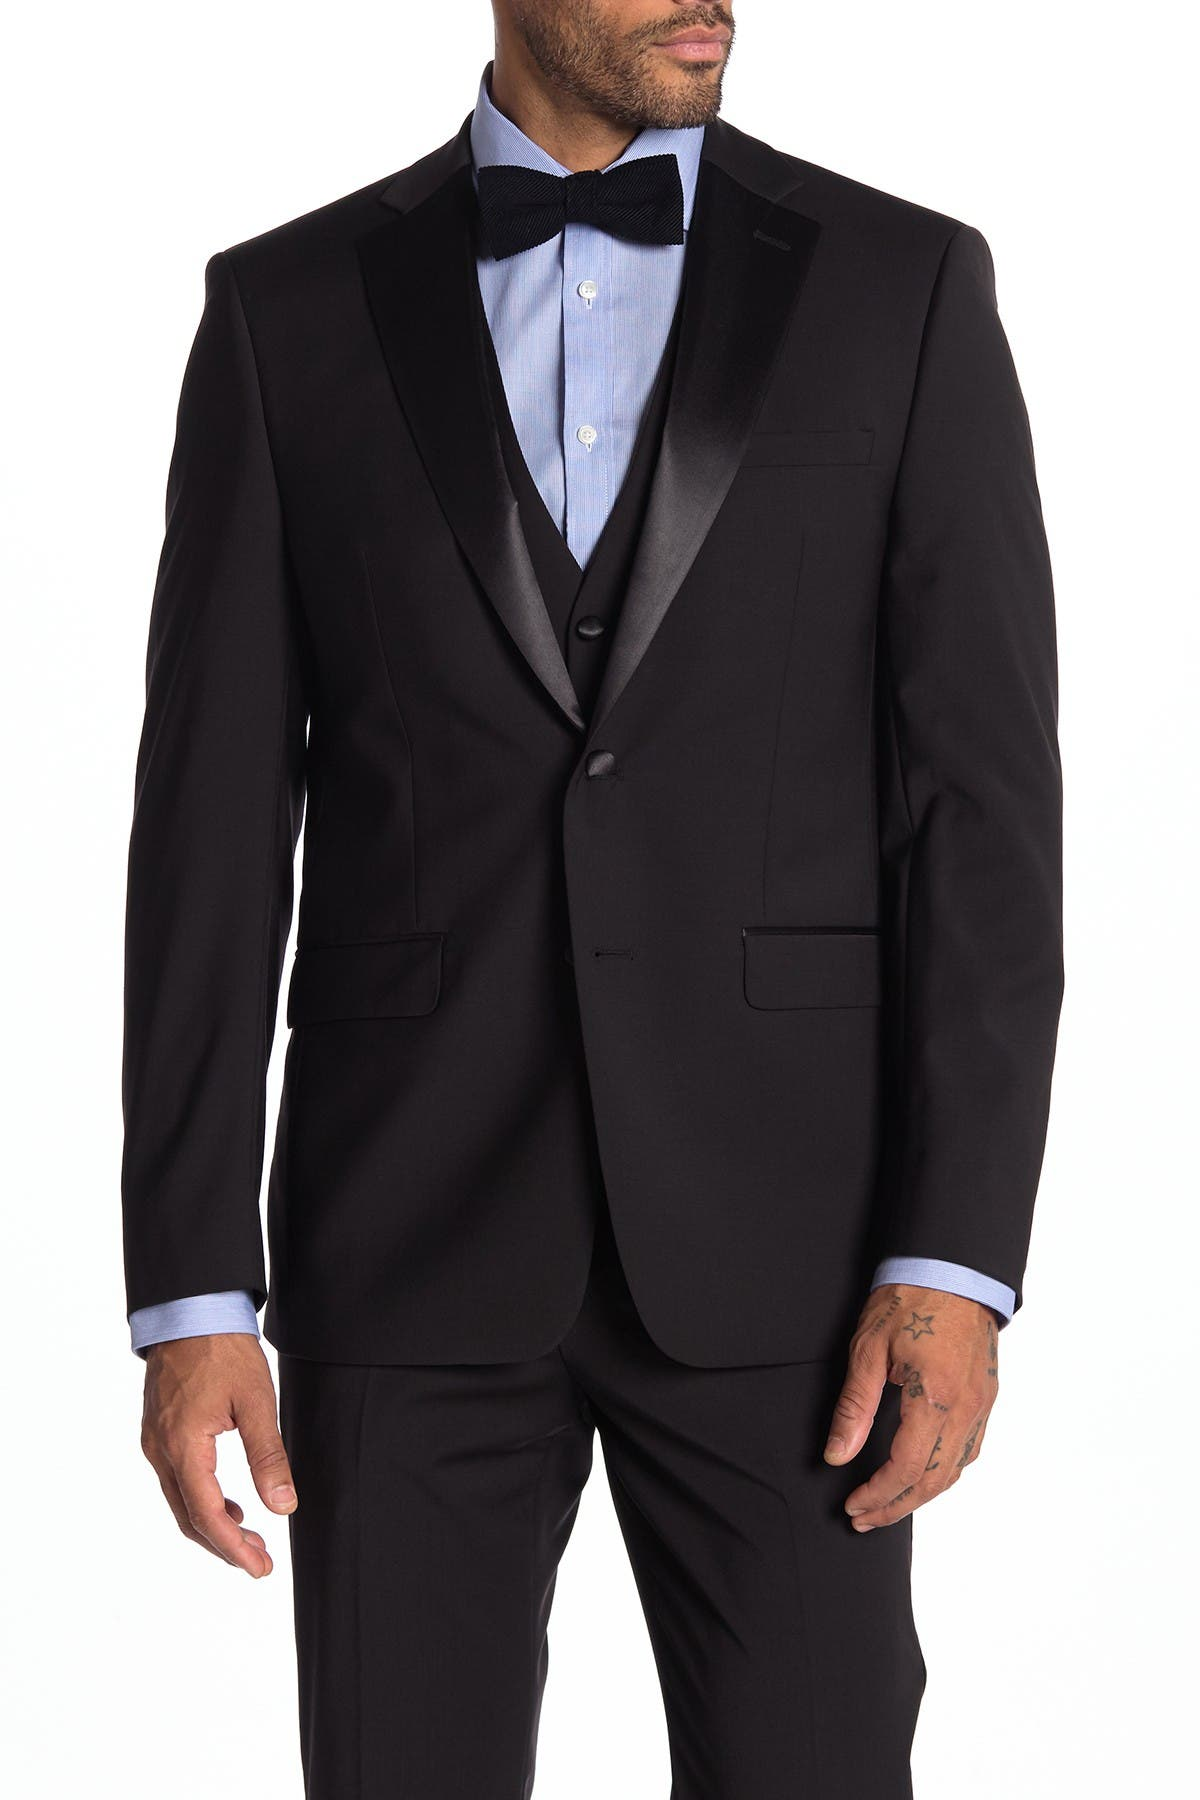 Image of Calvin Klein Main Notch Collar Slim Fit Suit Separate Jacket